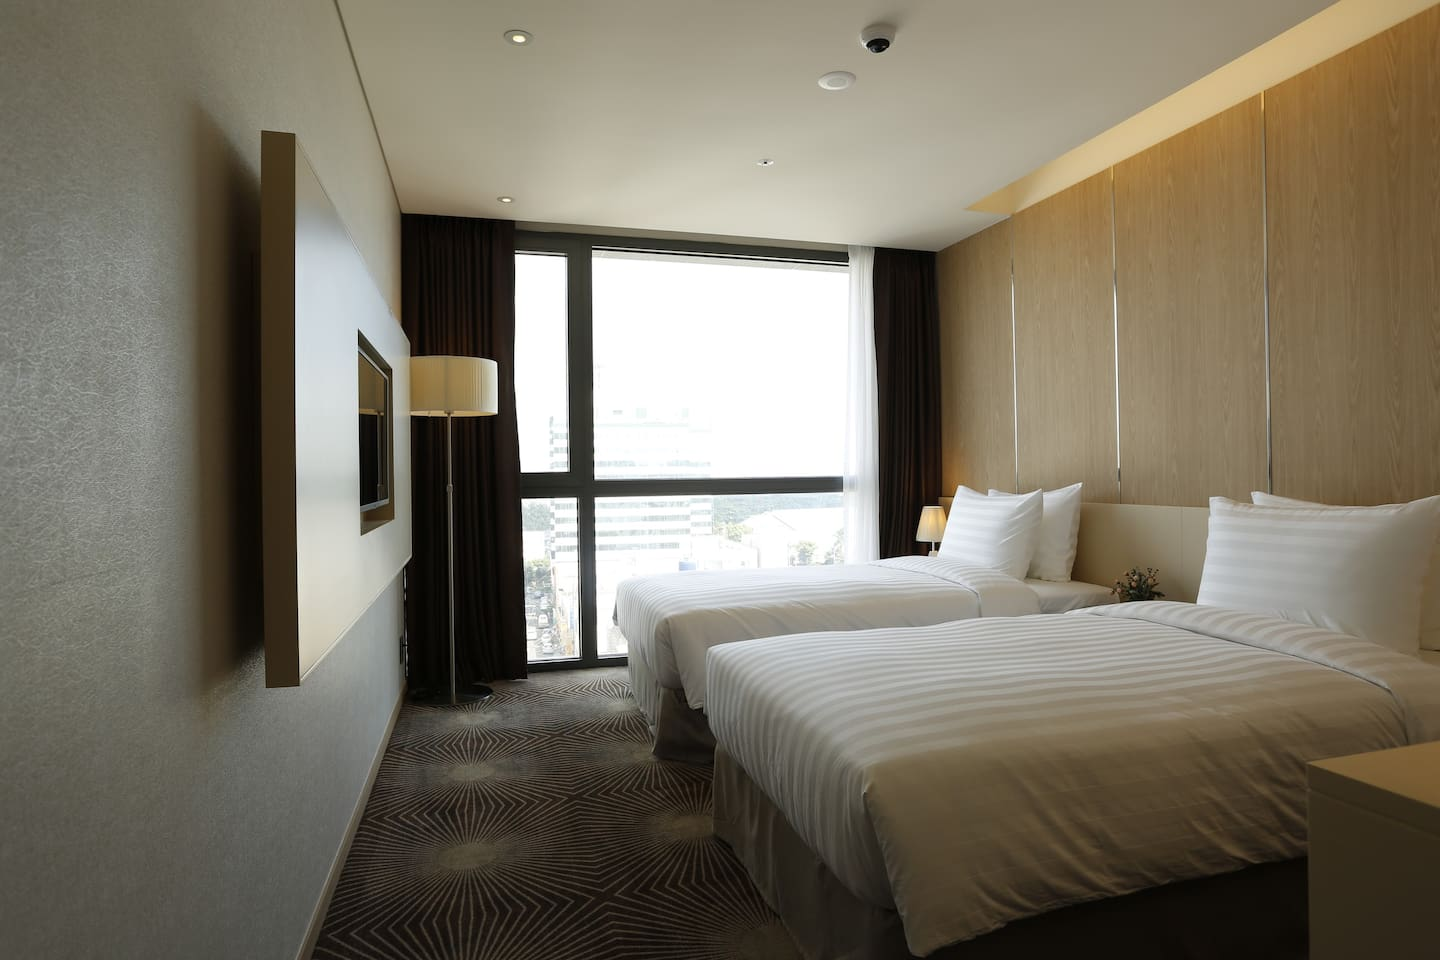 Days Hotel Double Room